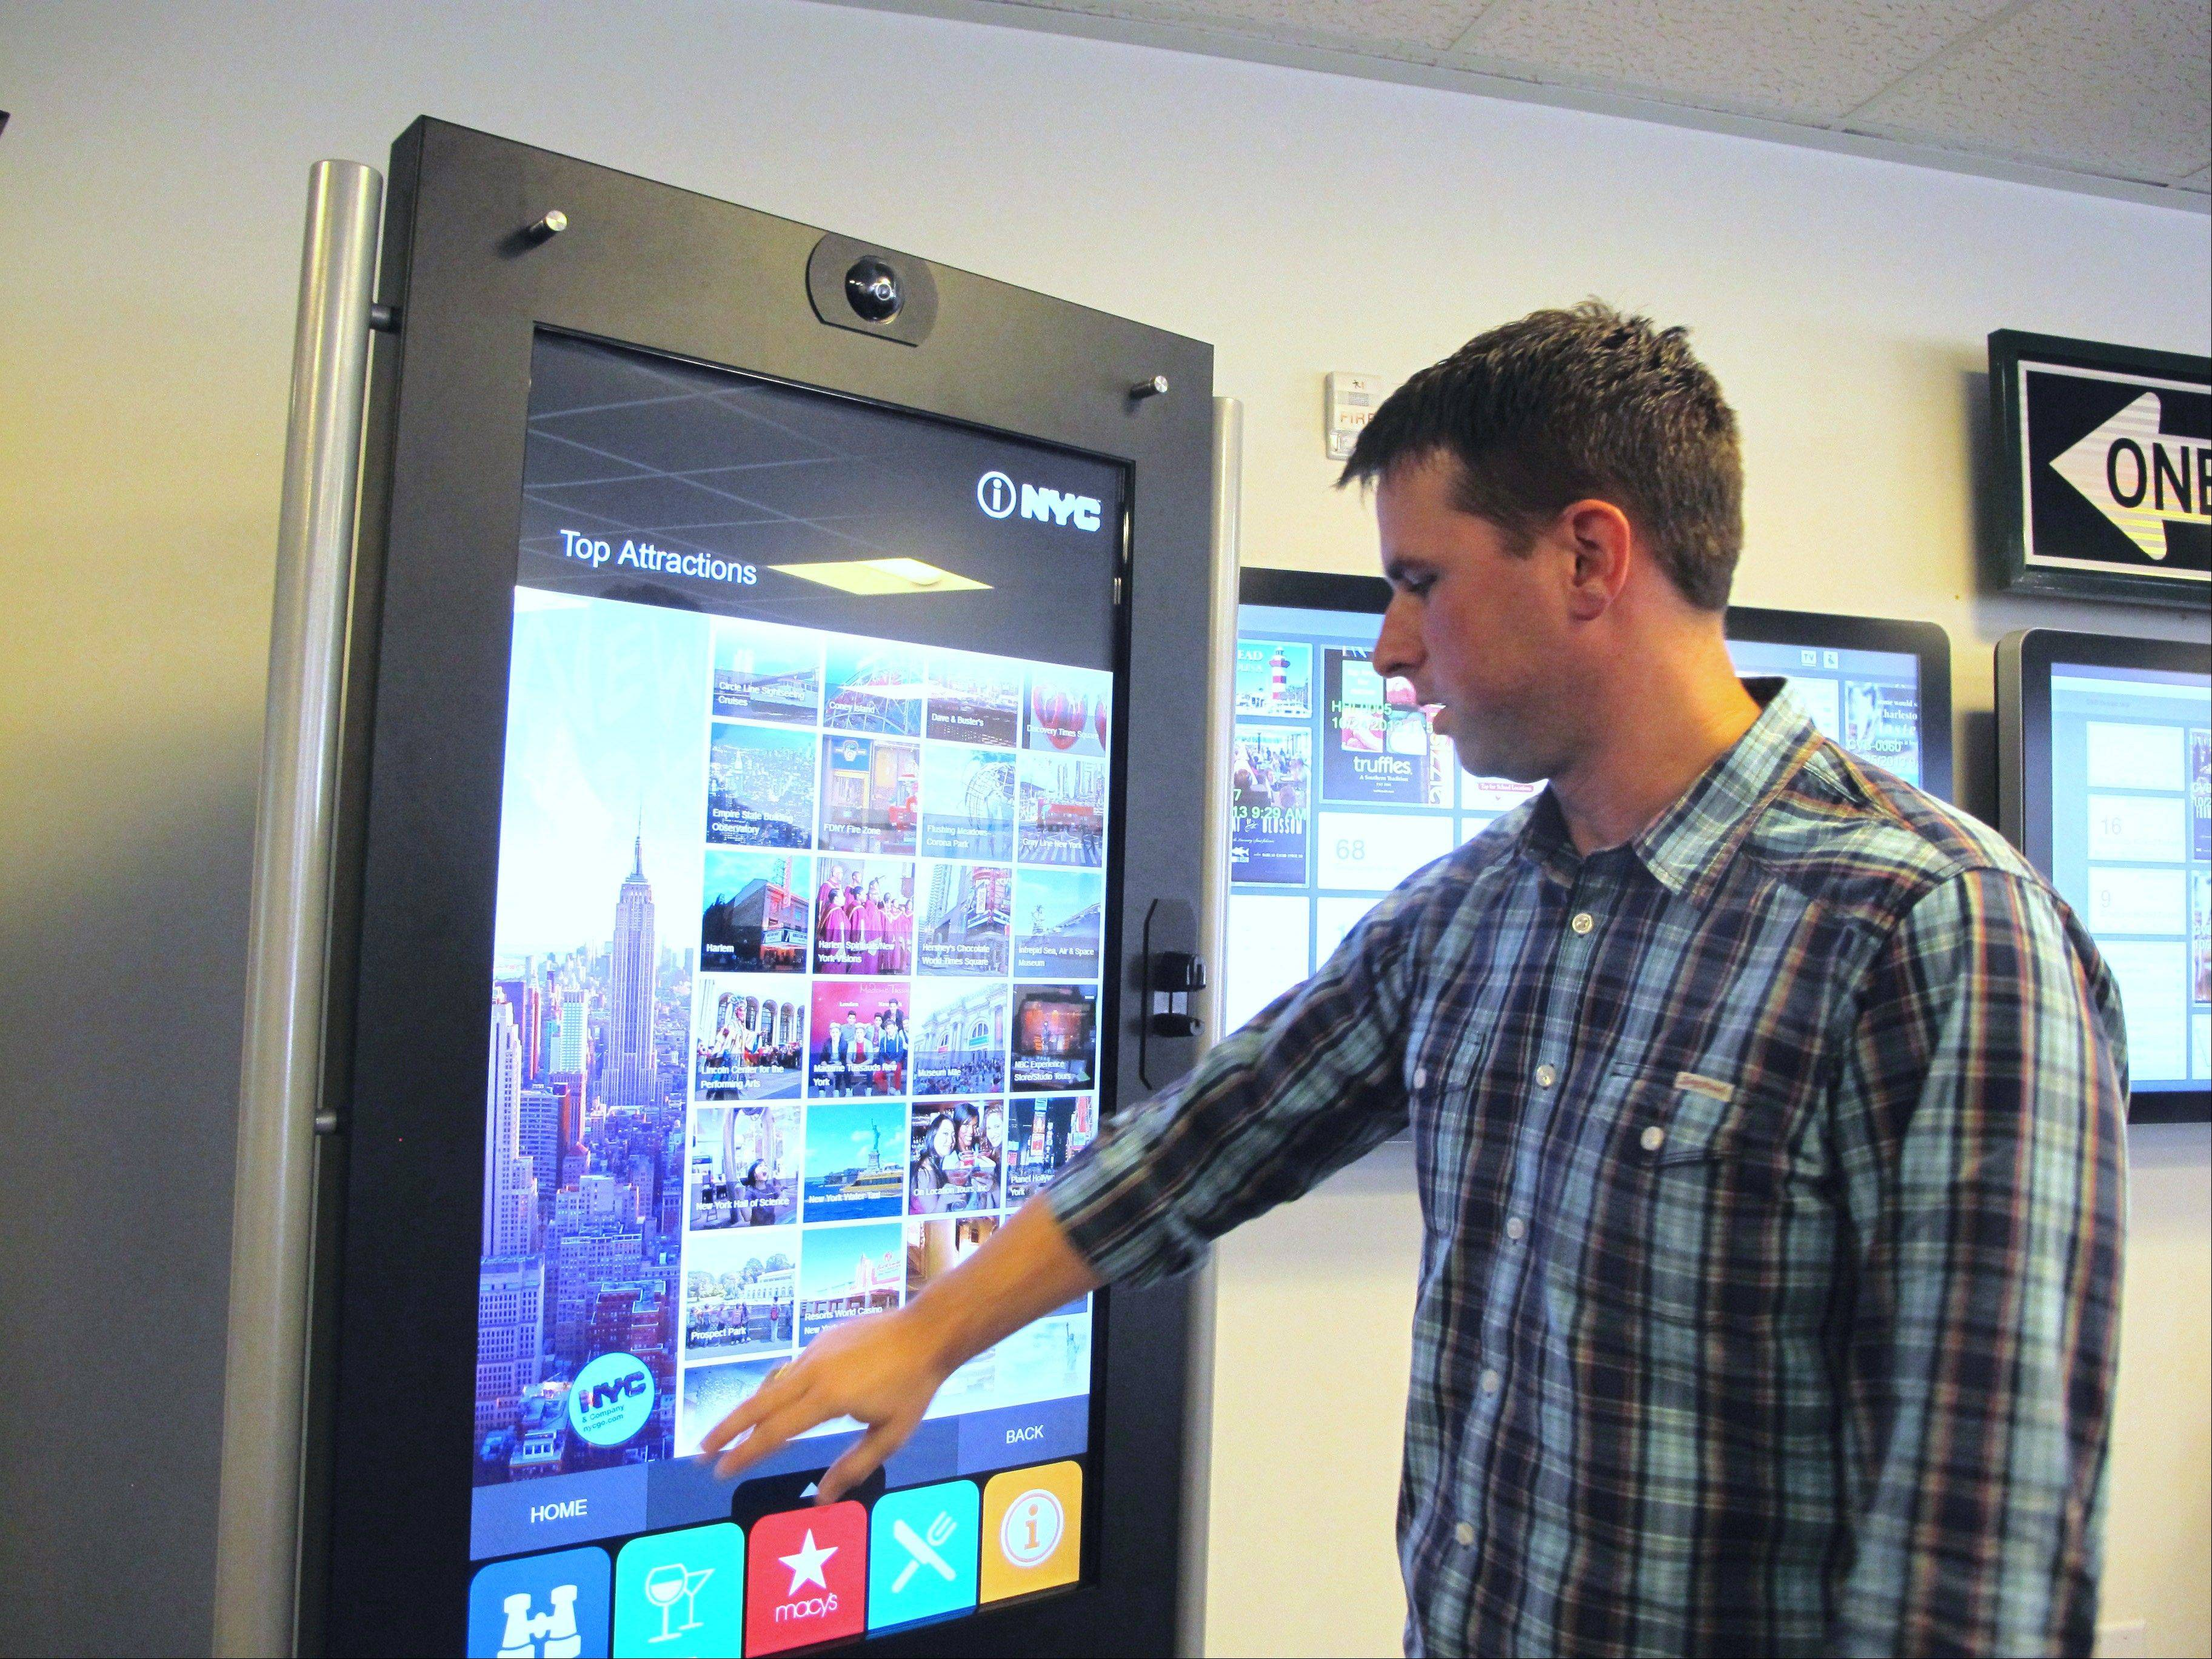 Chad Priest, the chief operating officer for City Corridor, demonstrates a touch-screen interactive visitor kiosk in the company's offices in North Charleston, S.C. The interactive kiosk allows visitors to click and print out everything from maps to menus and buy tickets for attractions.